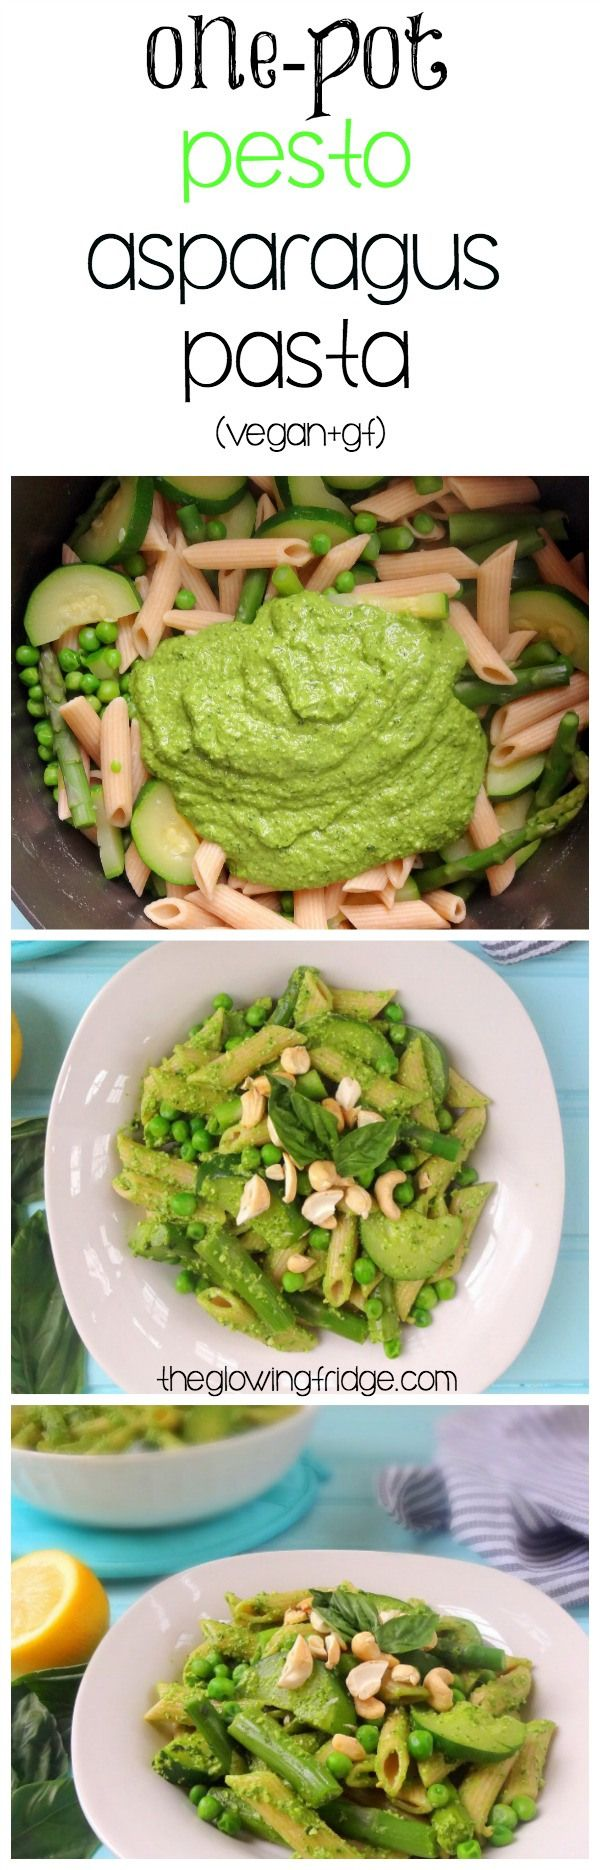 make green  and dead red is life Pasta colored one dish be shoes can pot This with made Asparagus and creamy in debenhams your easier  comforting  to healthy  One Pot  and made Peas  Vibrantly and totally pesto  GF  Zucchini or Vegan Pesto delectable lickable